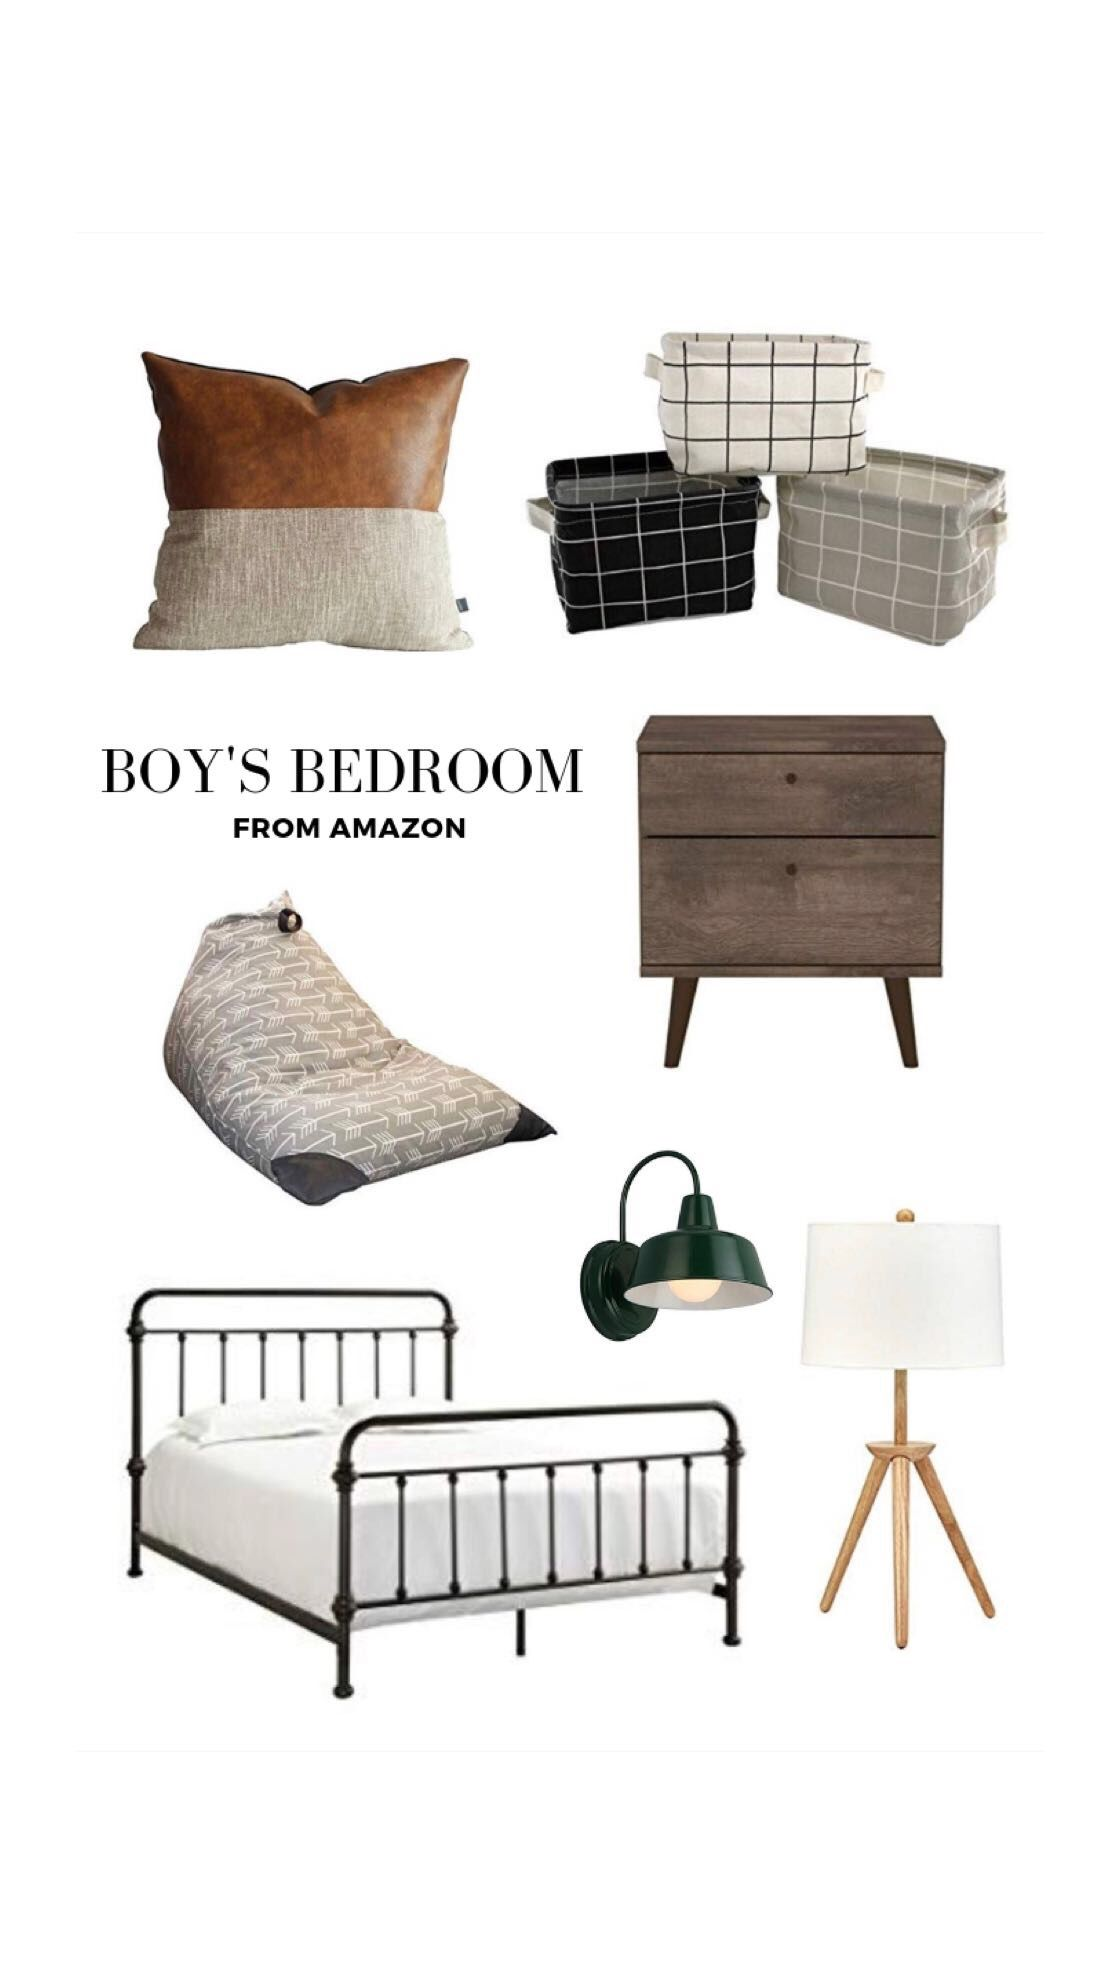 Amazon.com - Boys bedroom